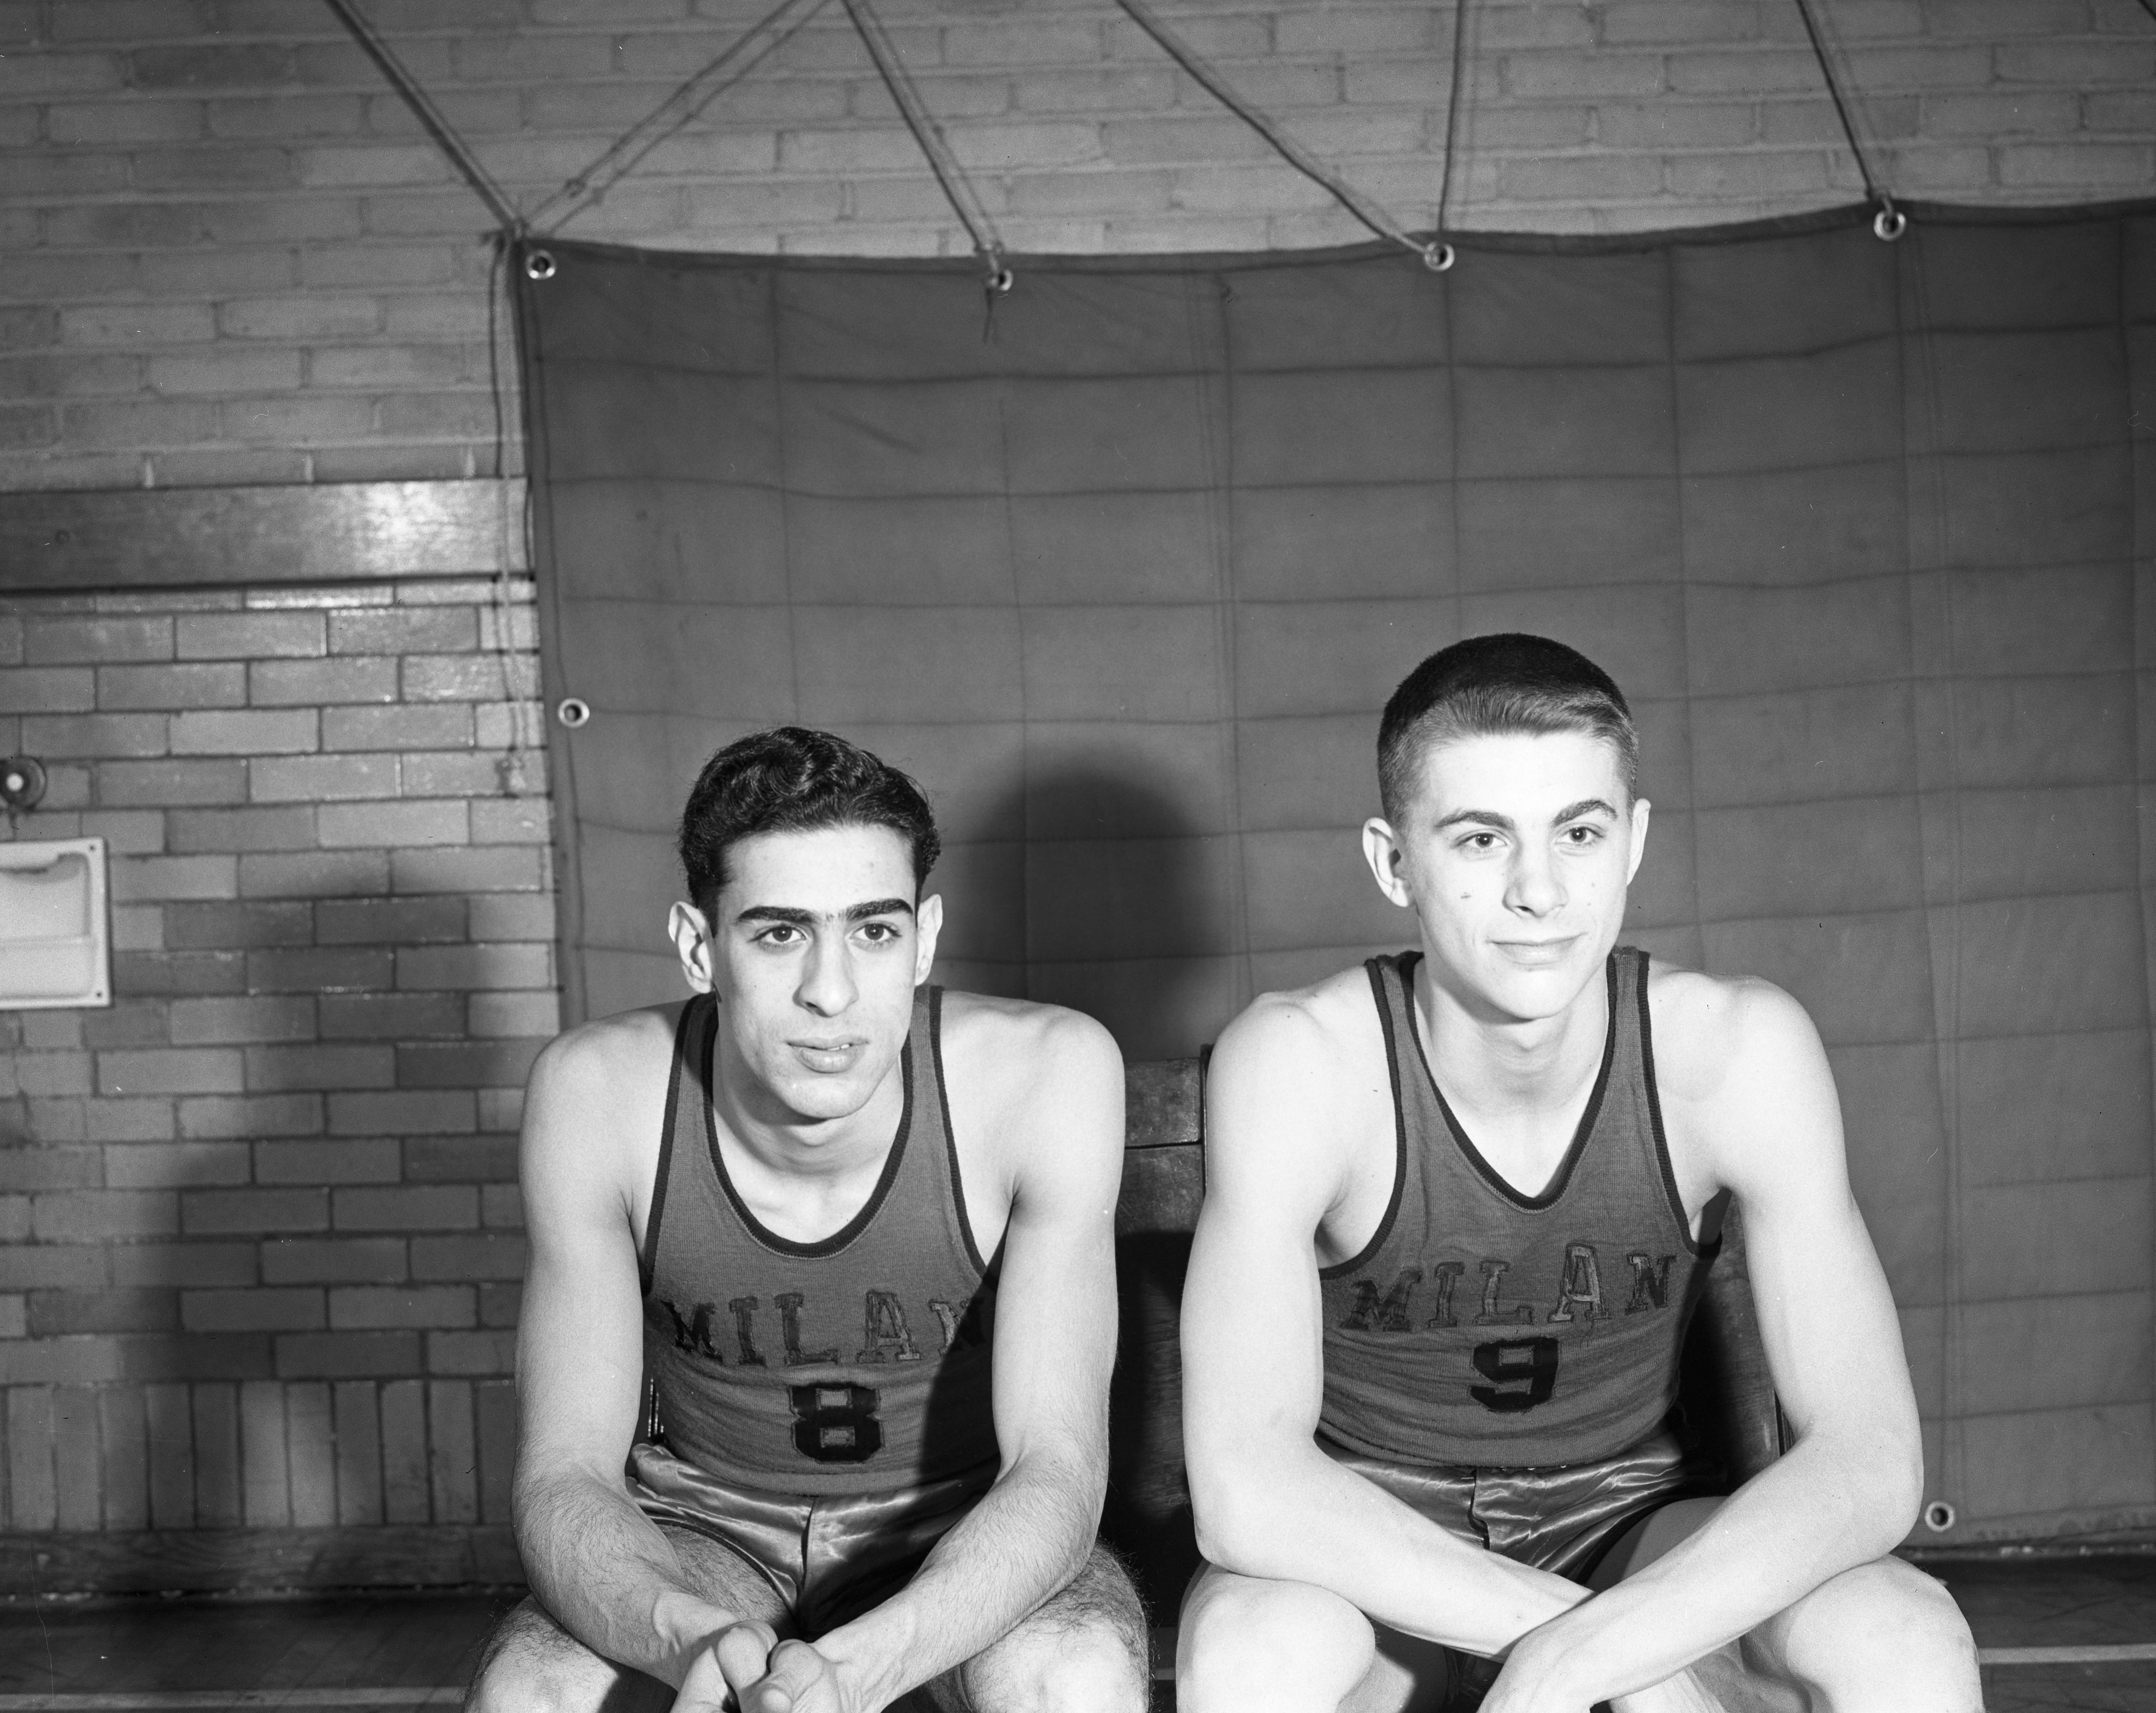 Milan High School Basketball Players, March 1948 image